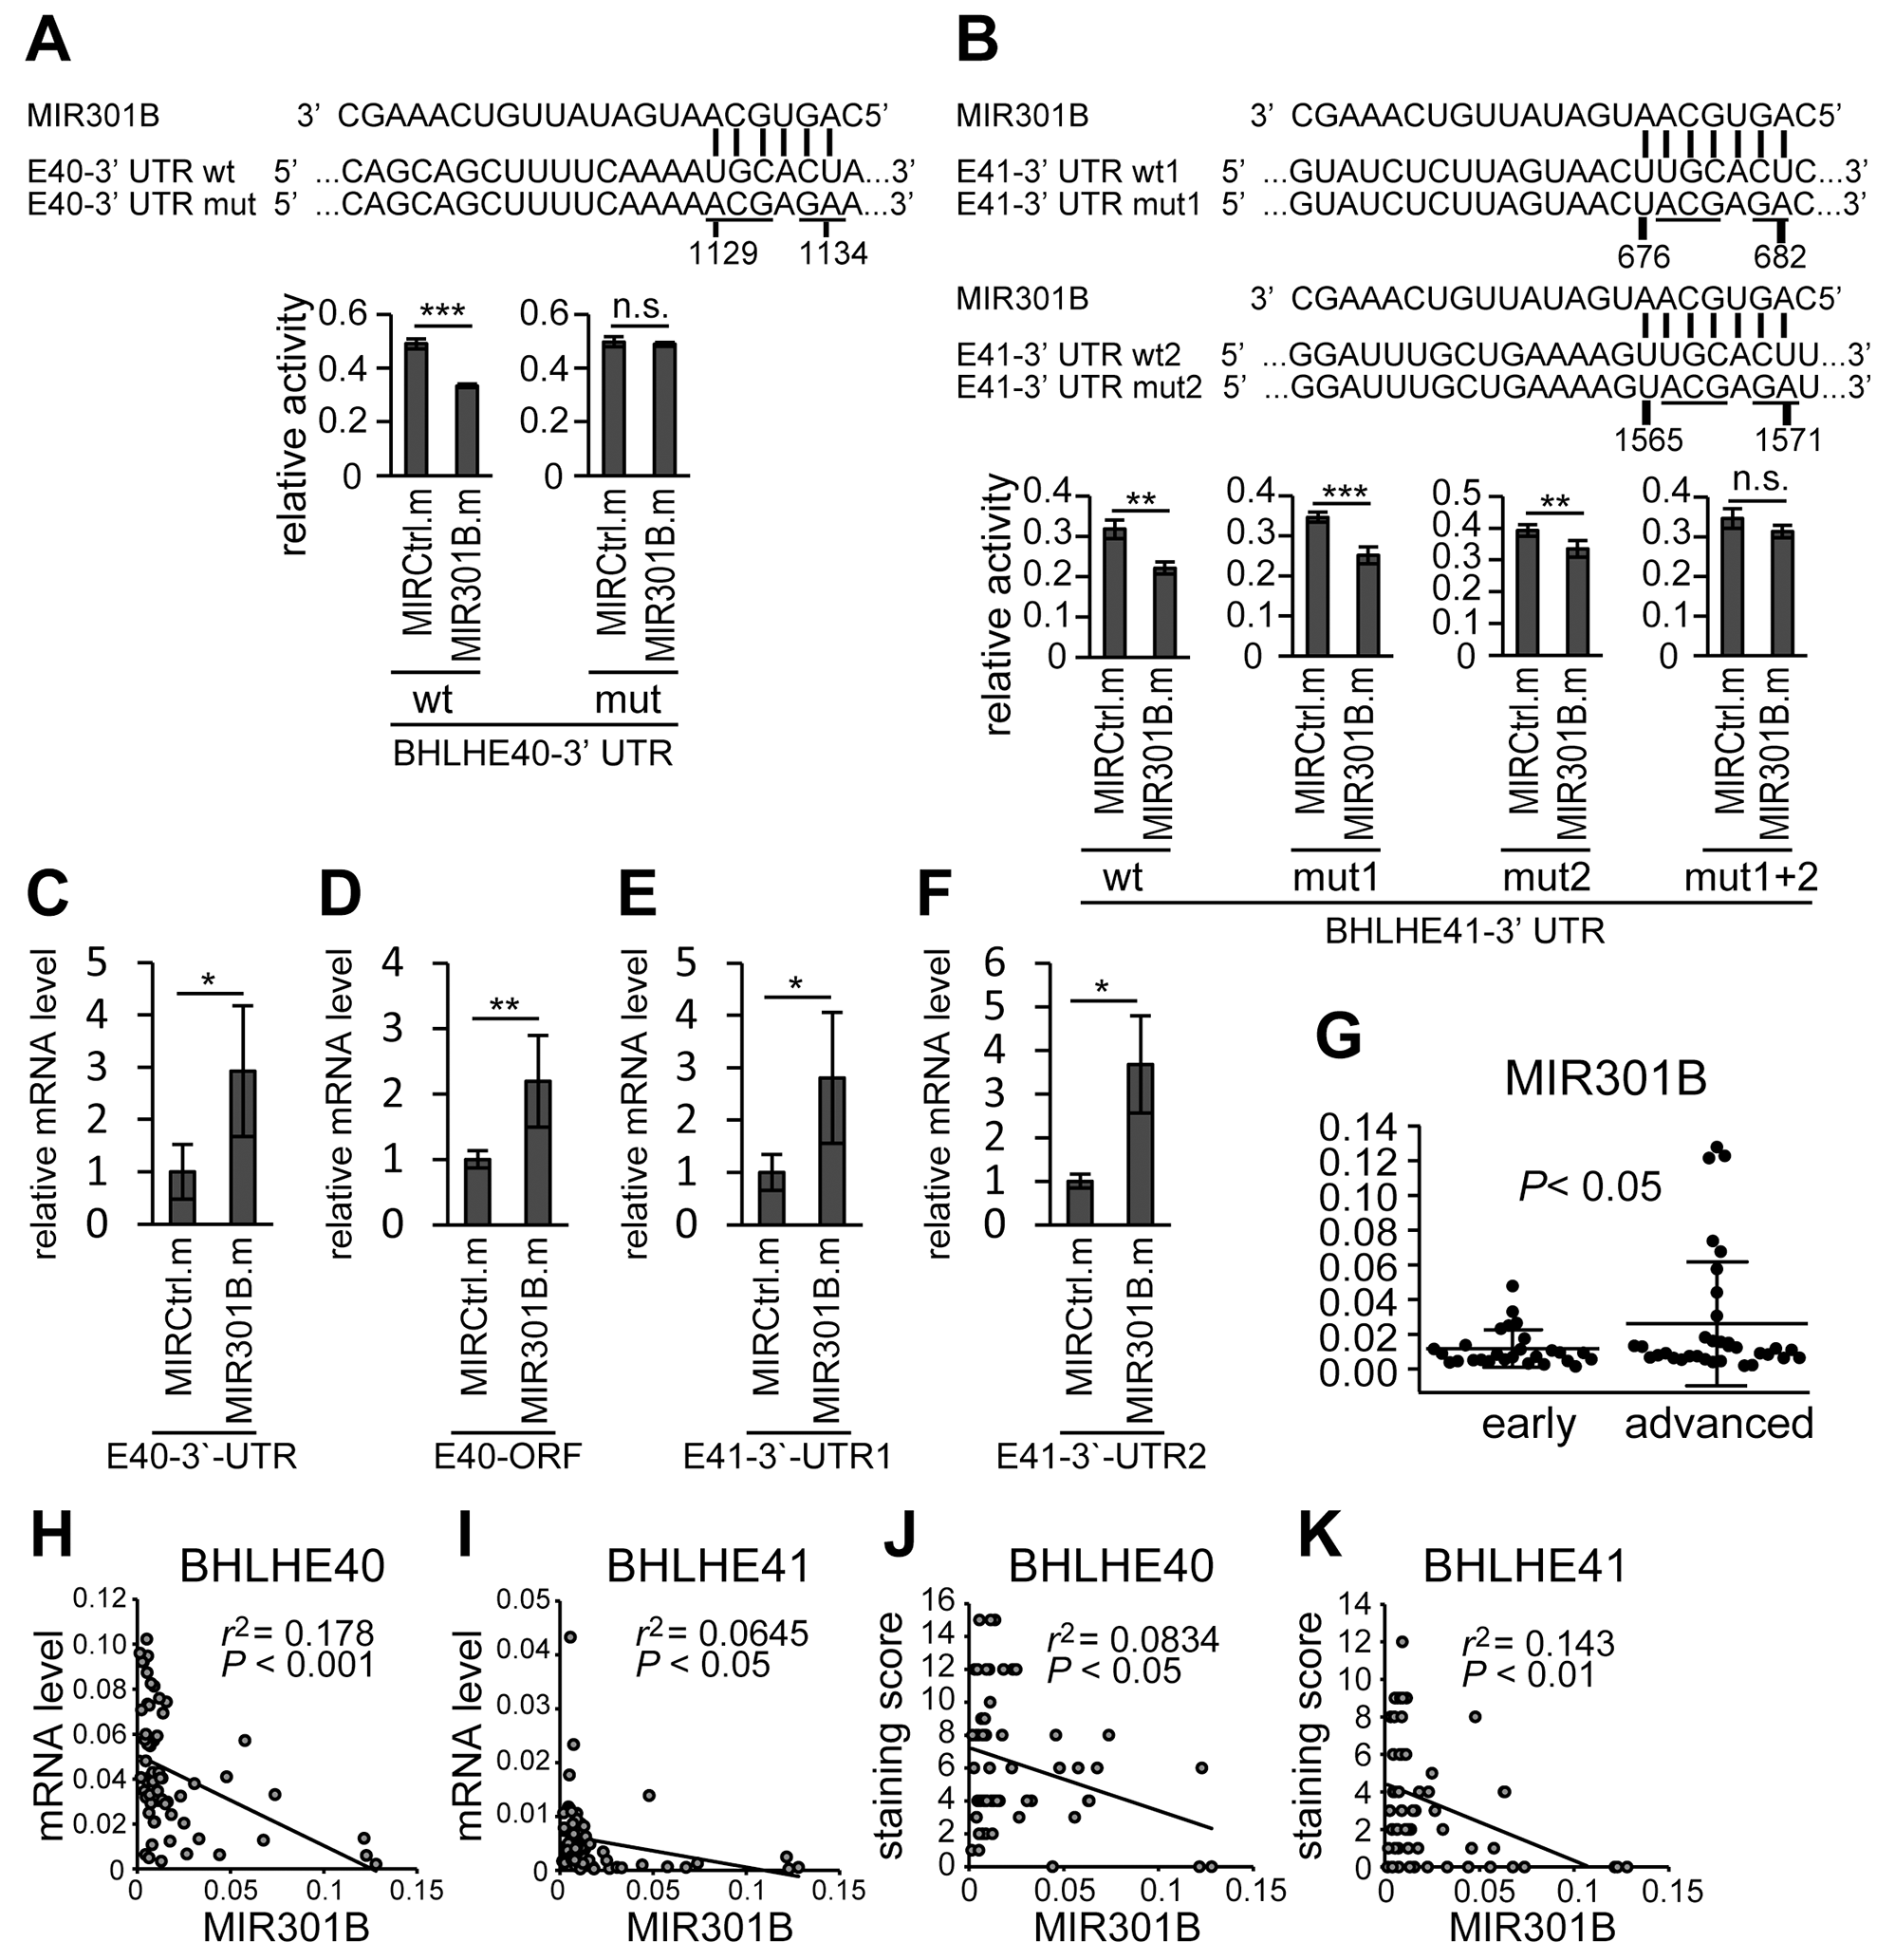 3'-UTRs mediated regulation of BHLHE40/41 expression by MIR301B